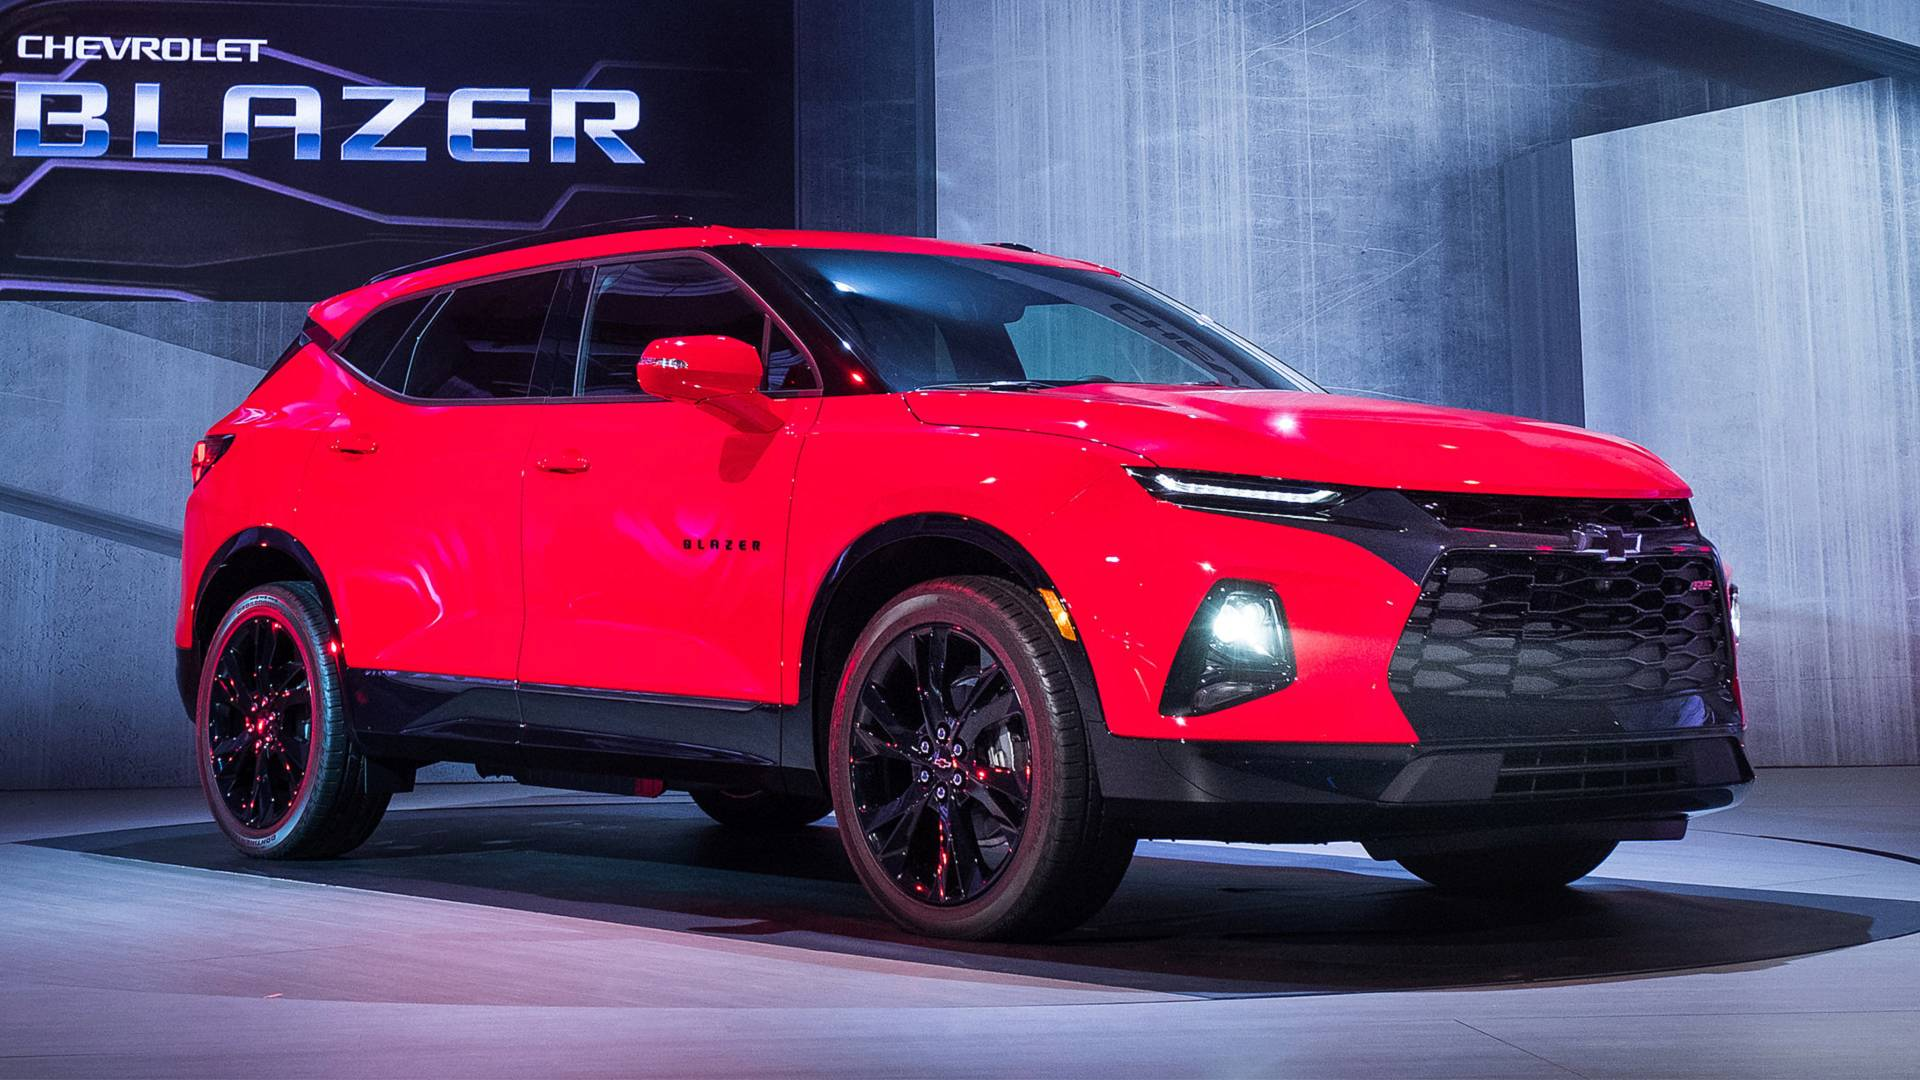 89 The Best 2020 The Chevy Blazer Release Date and Concept